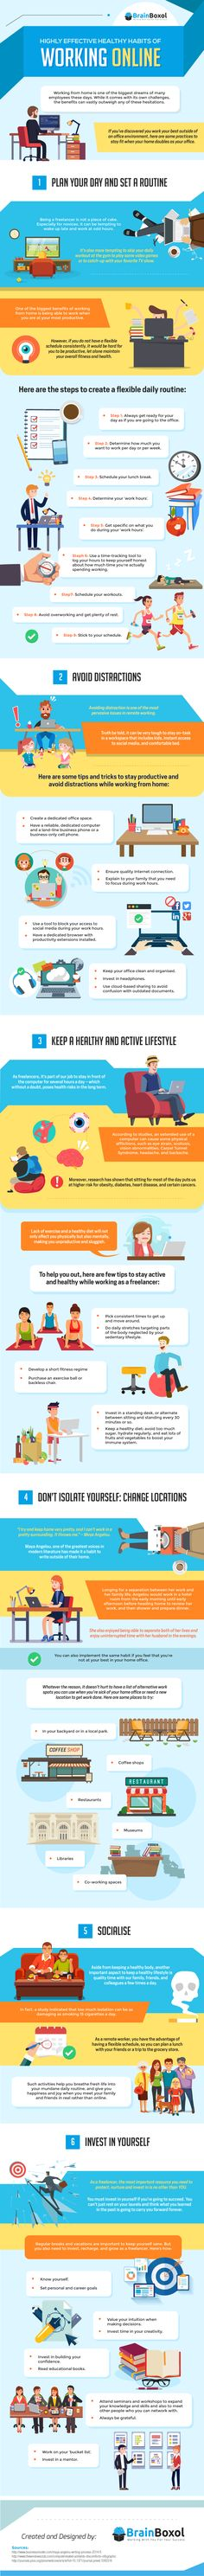 Highly Effective Healthy Habits of Working Online - #Infographic